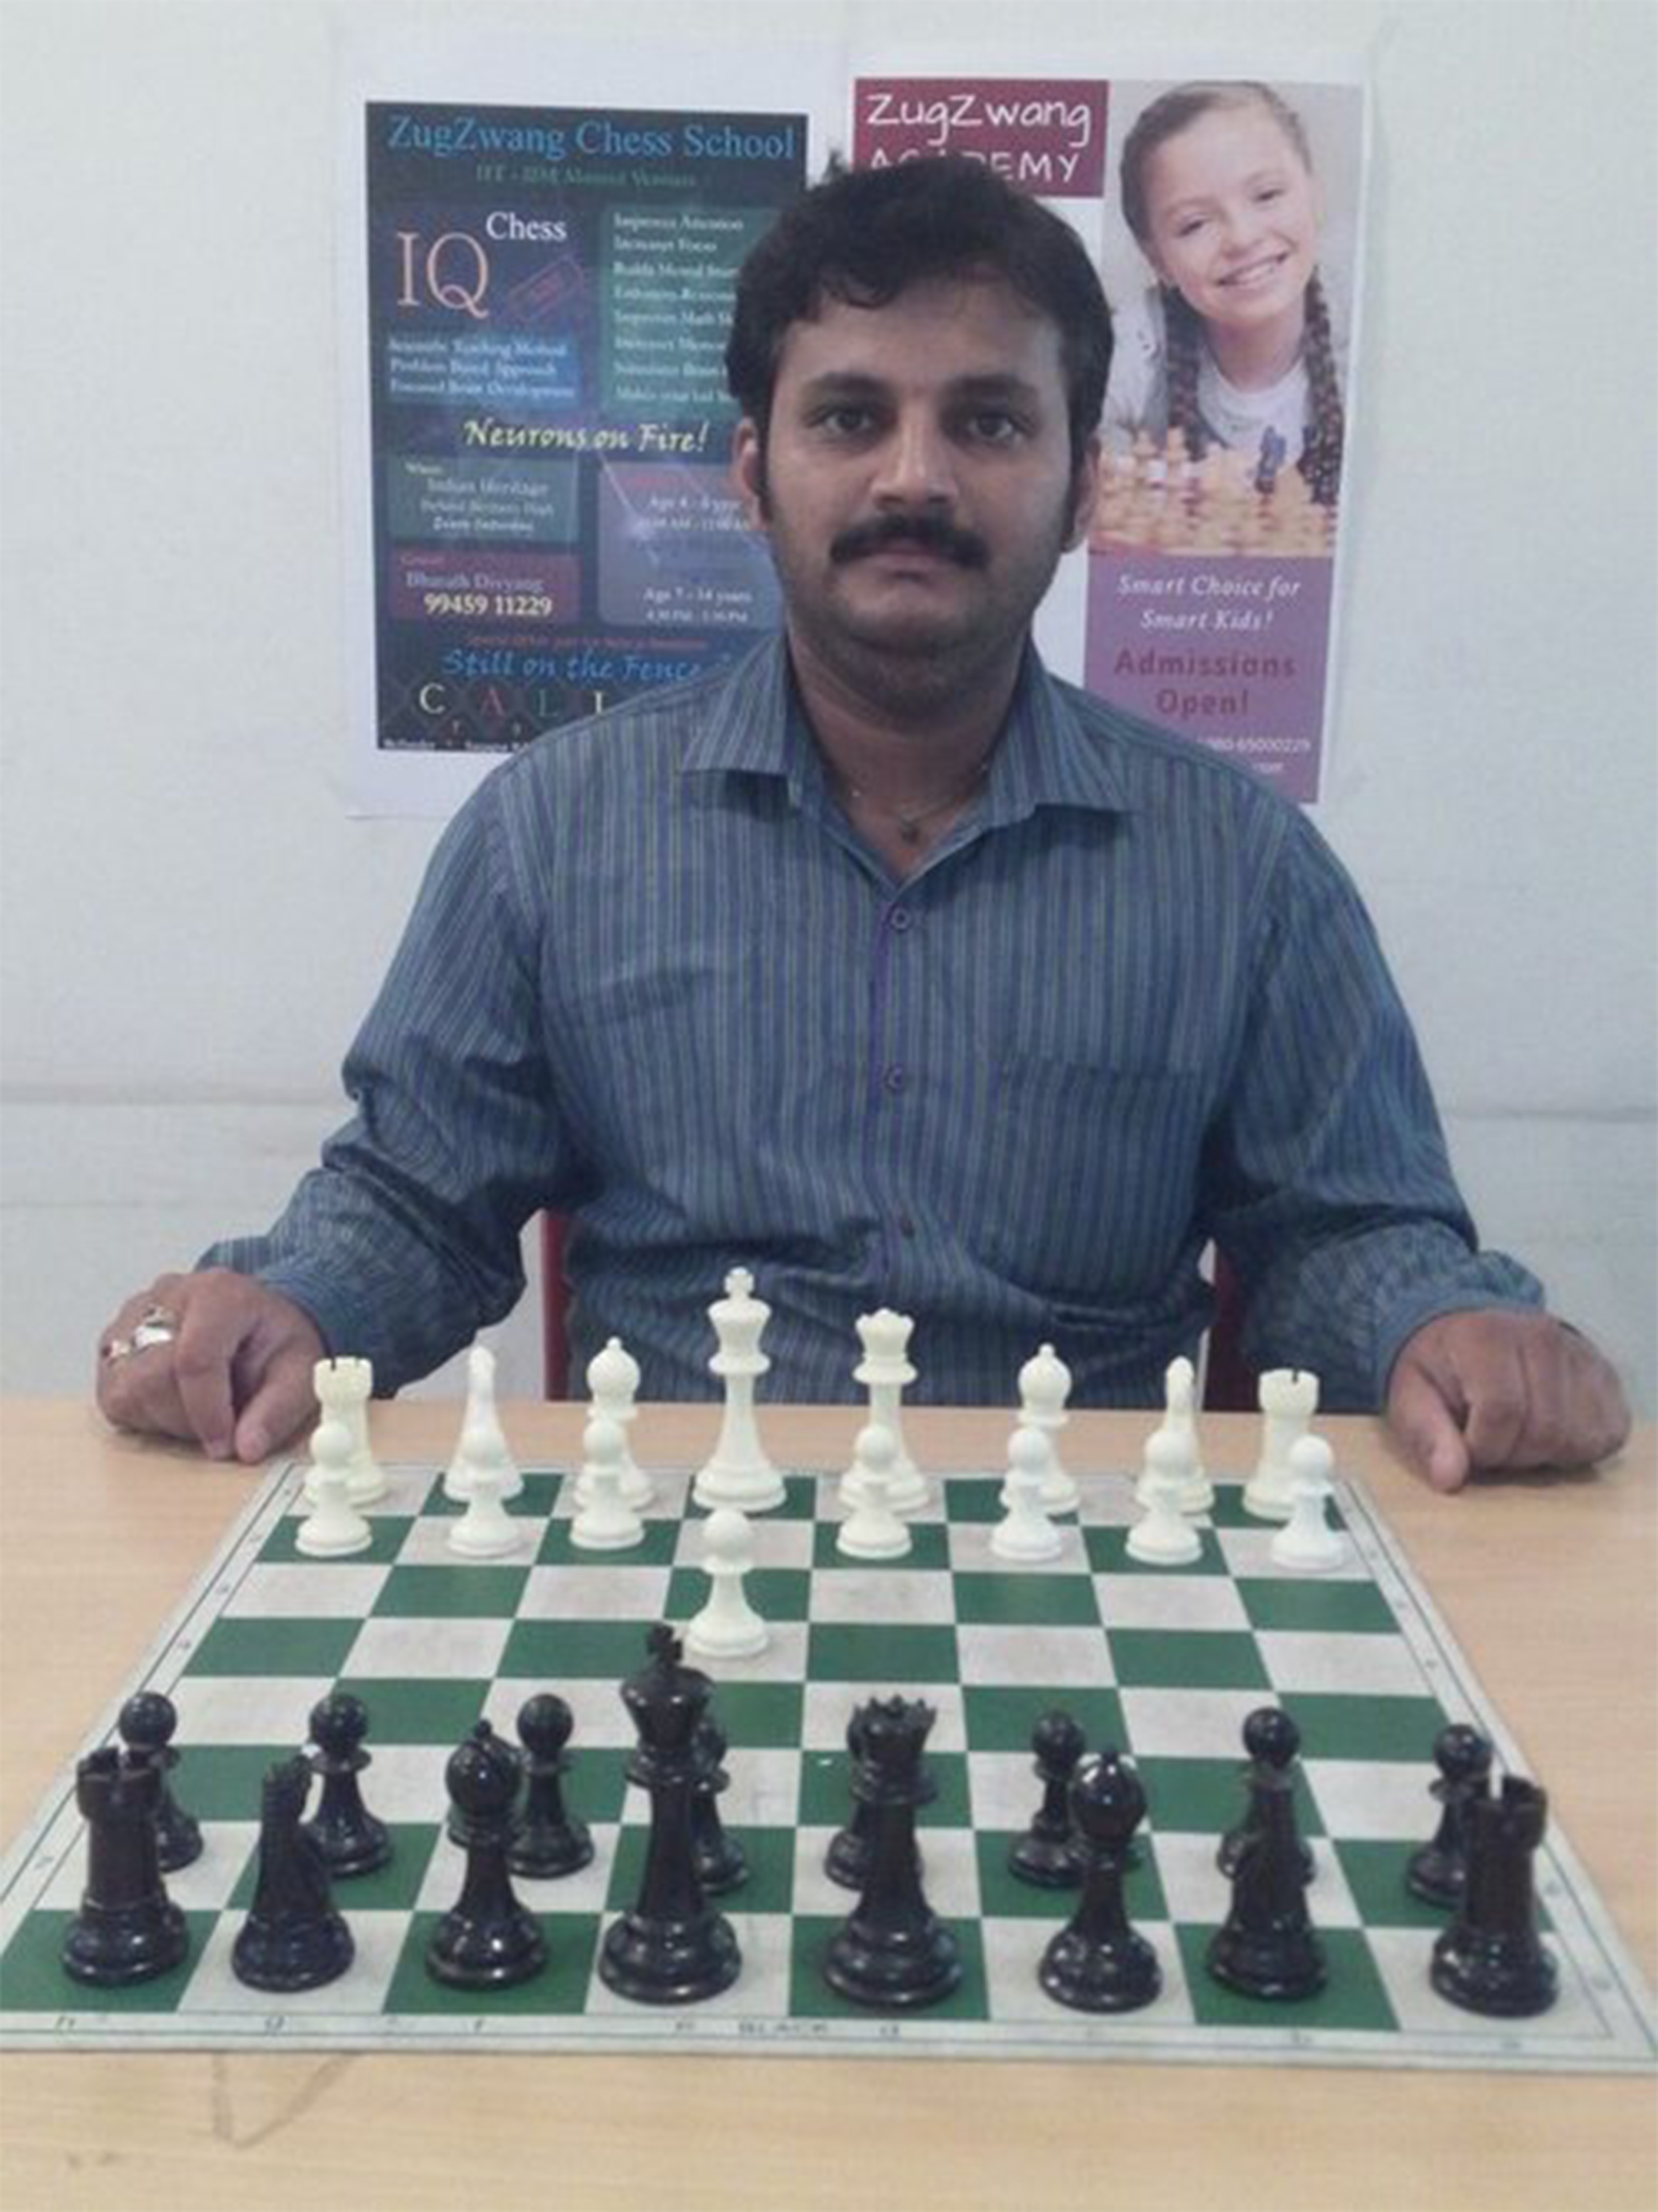 Name: Vinayak Kumar Coach Level:  Level B Target Students: Beginner   Experience: 2+ years   Availability: No